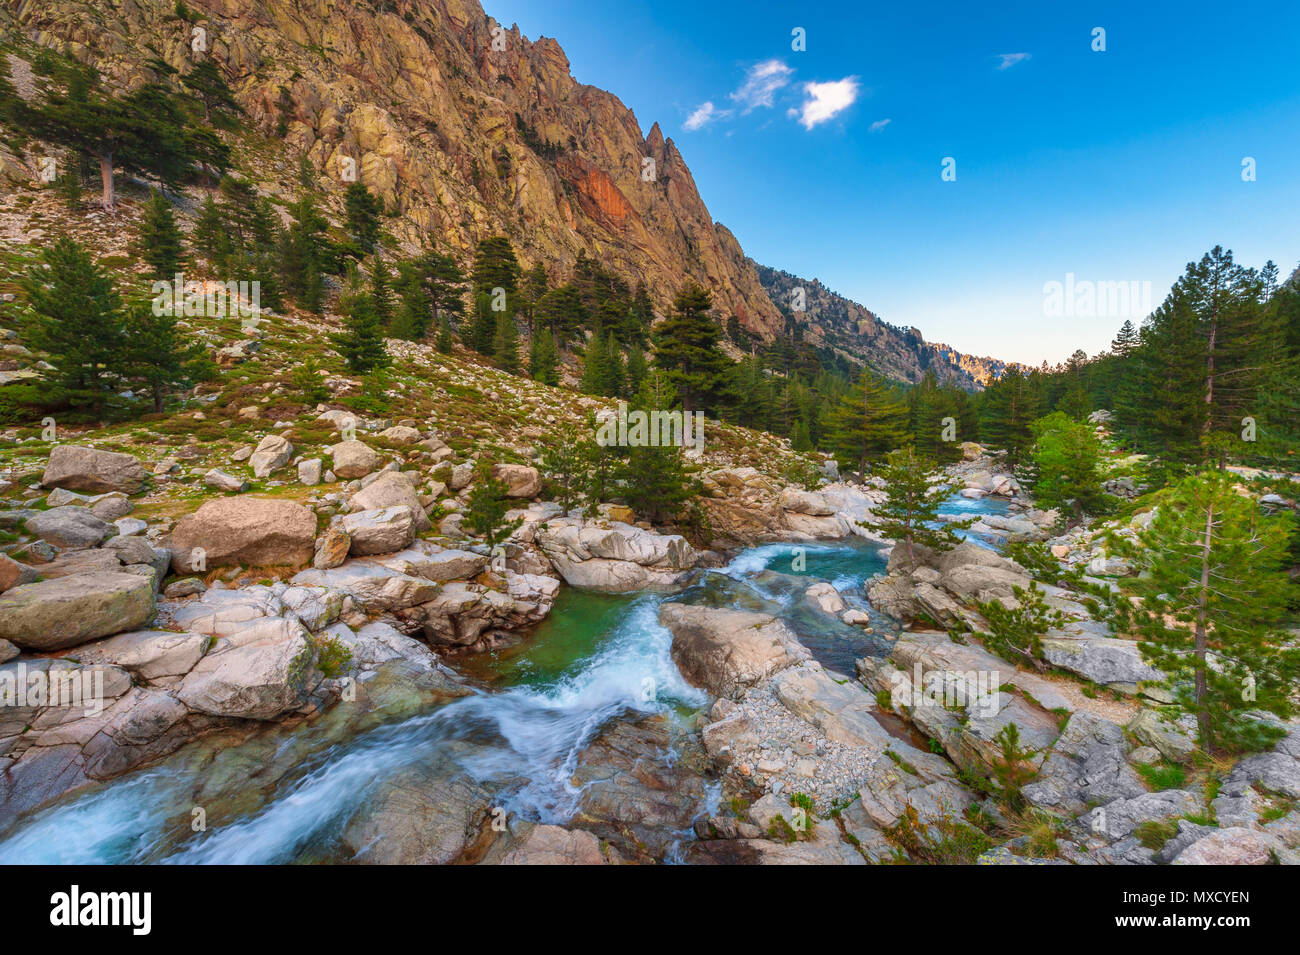 Mountain Stream in Central Corsica, France around sunset - Stock Image